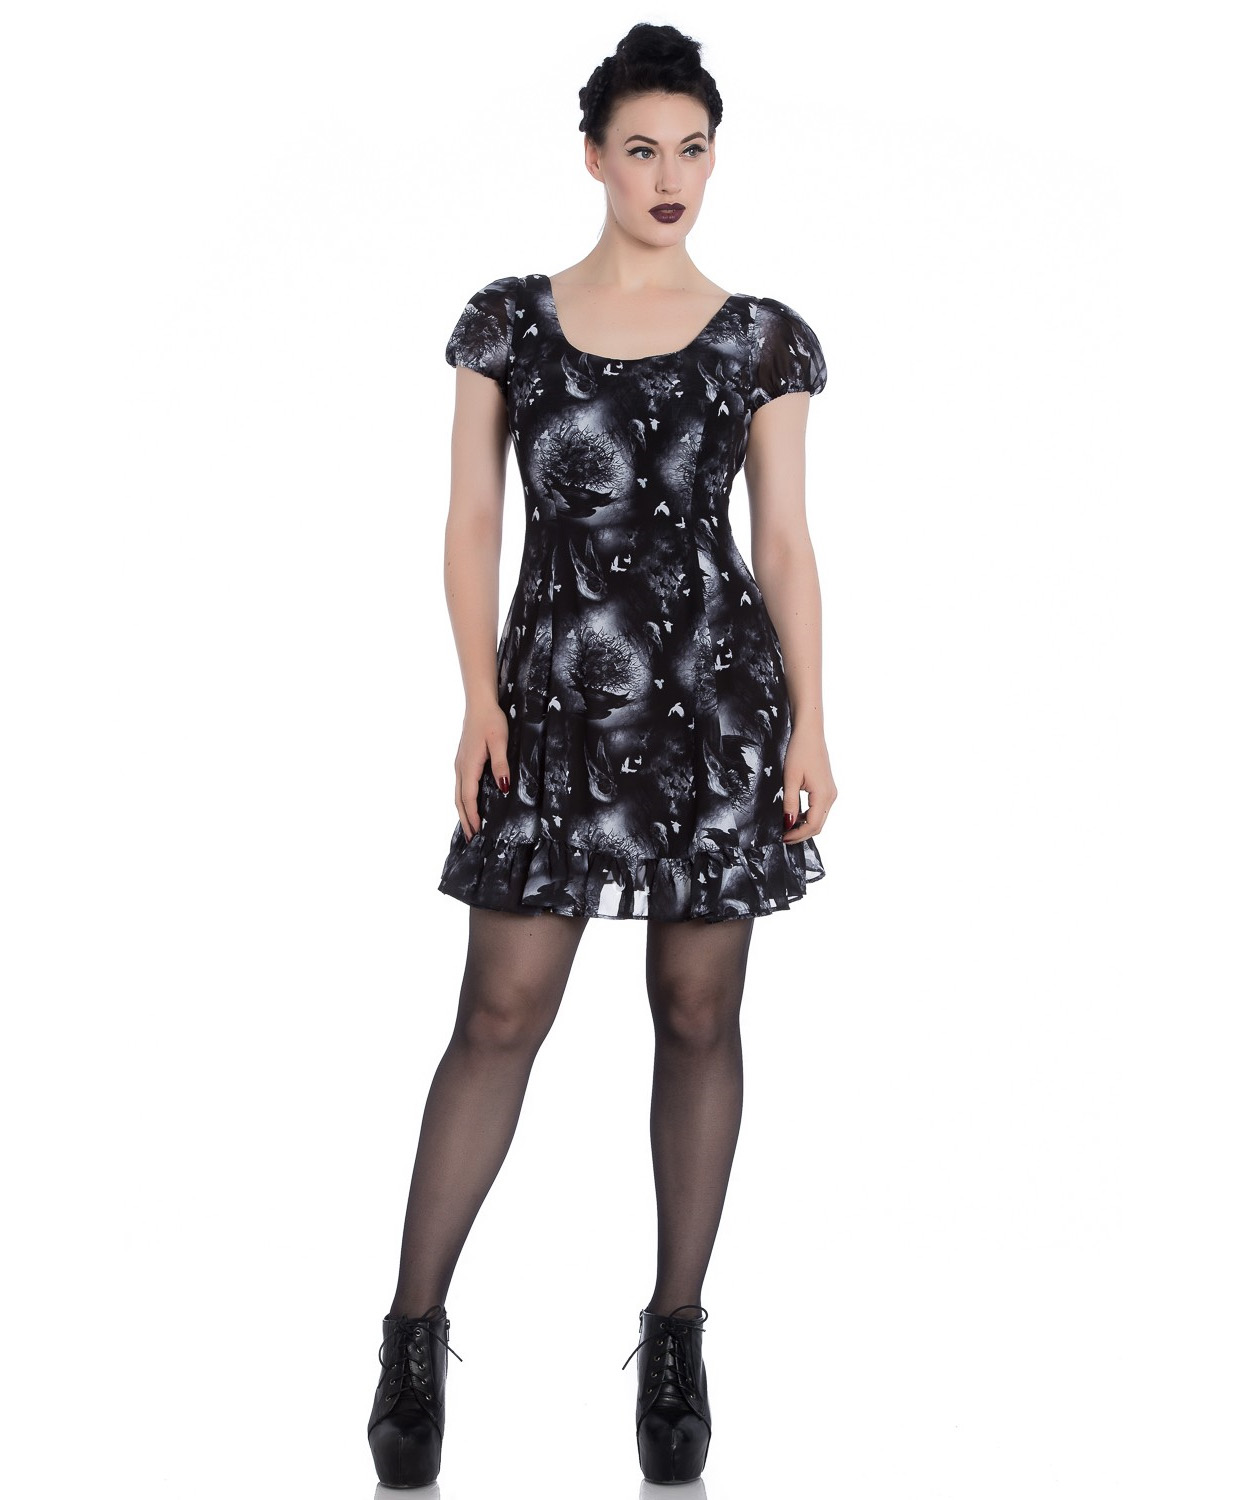 Hell-Bunny-Alchemy-Gothic-Black-Skater-Mini-Dress-ASH-Crows-Skulls-All-Sizes thumbnail 23